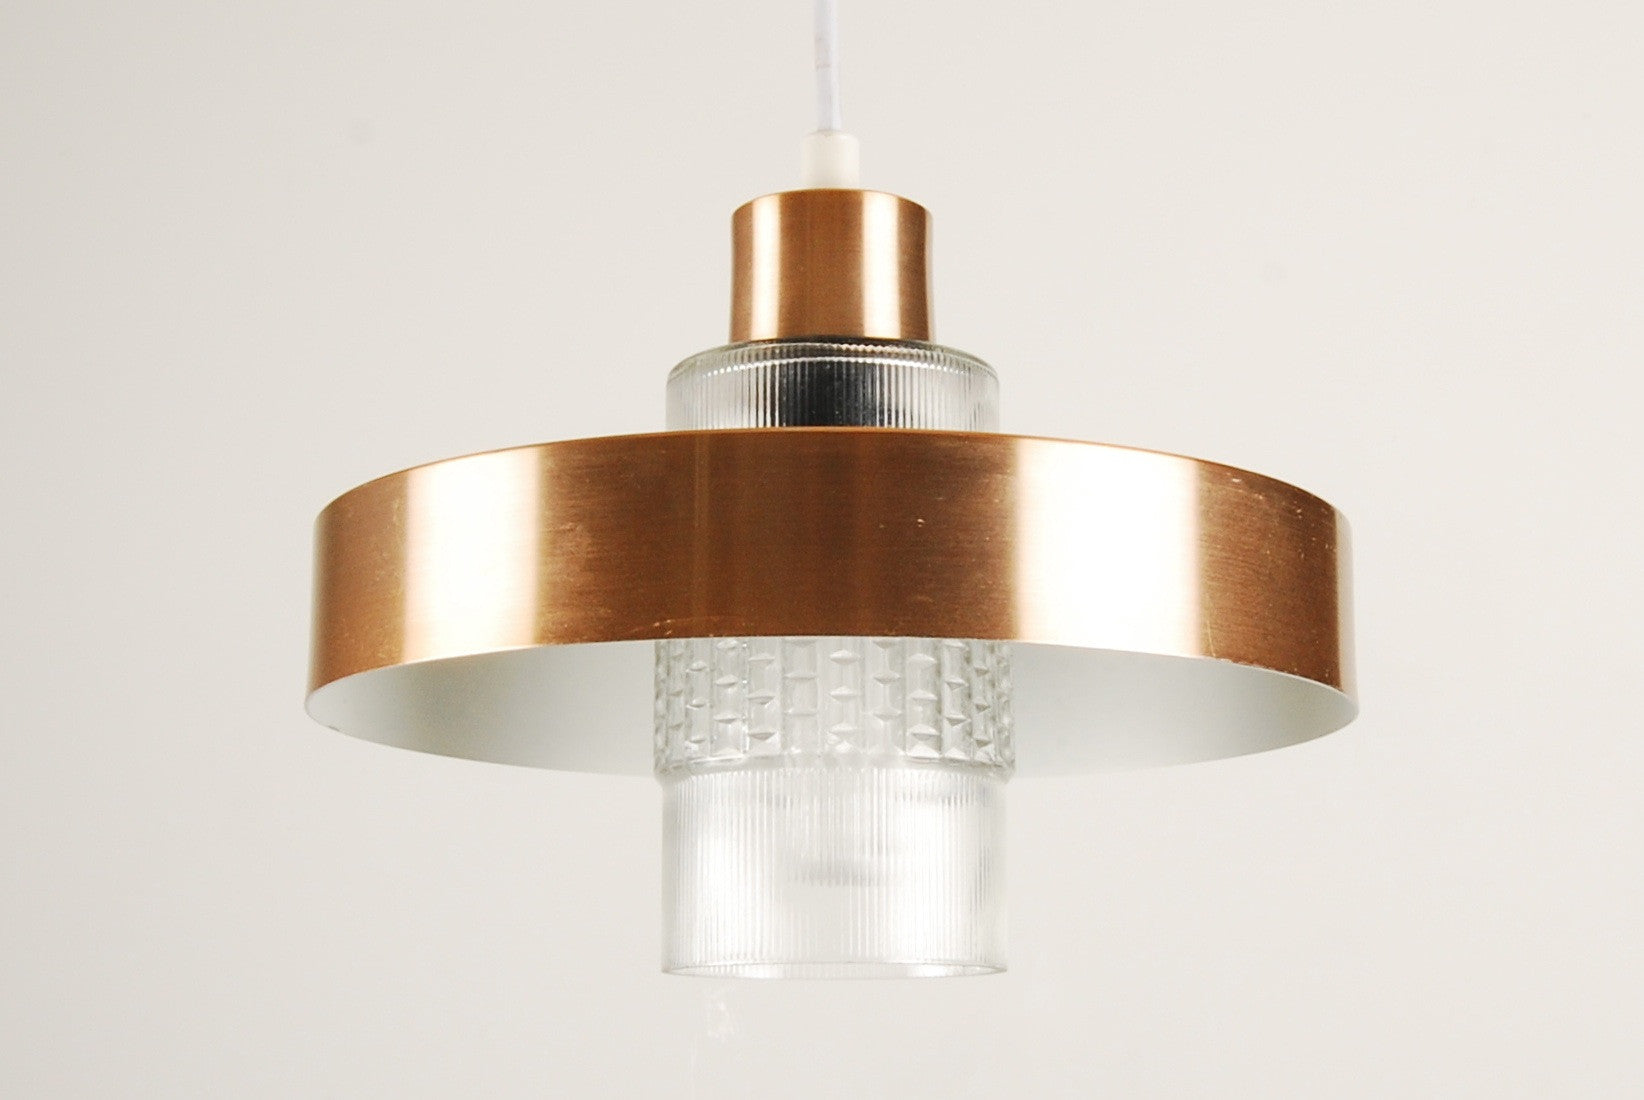 Chase & Sorensen Brass and glass ceiling light